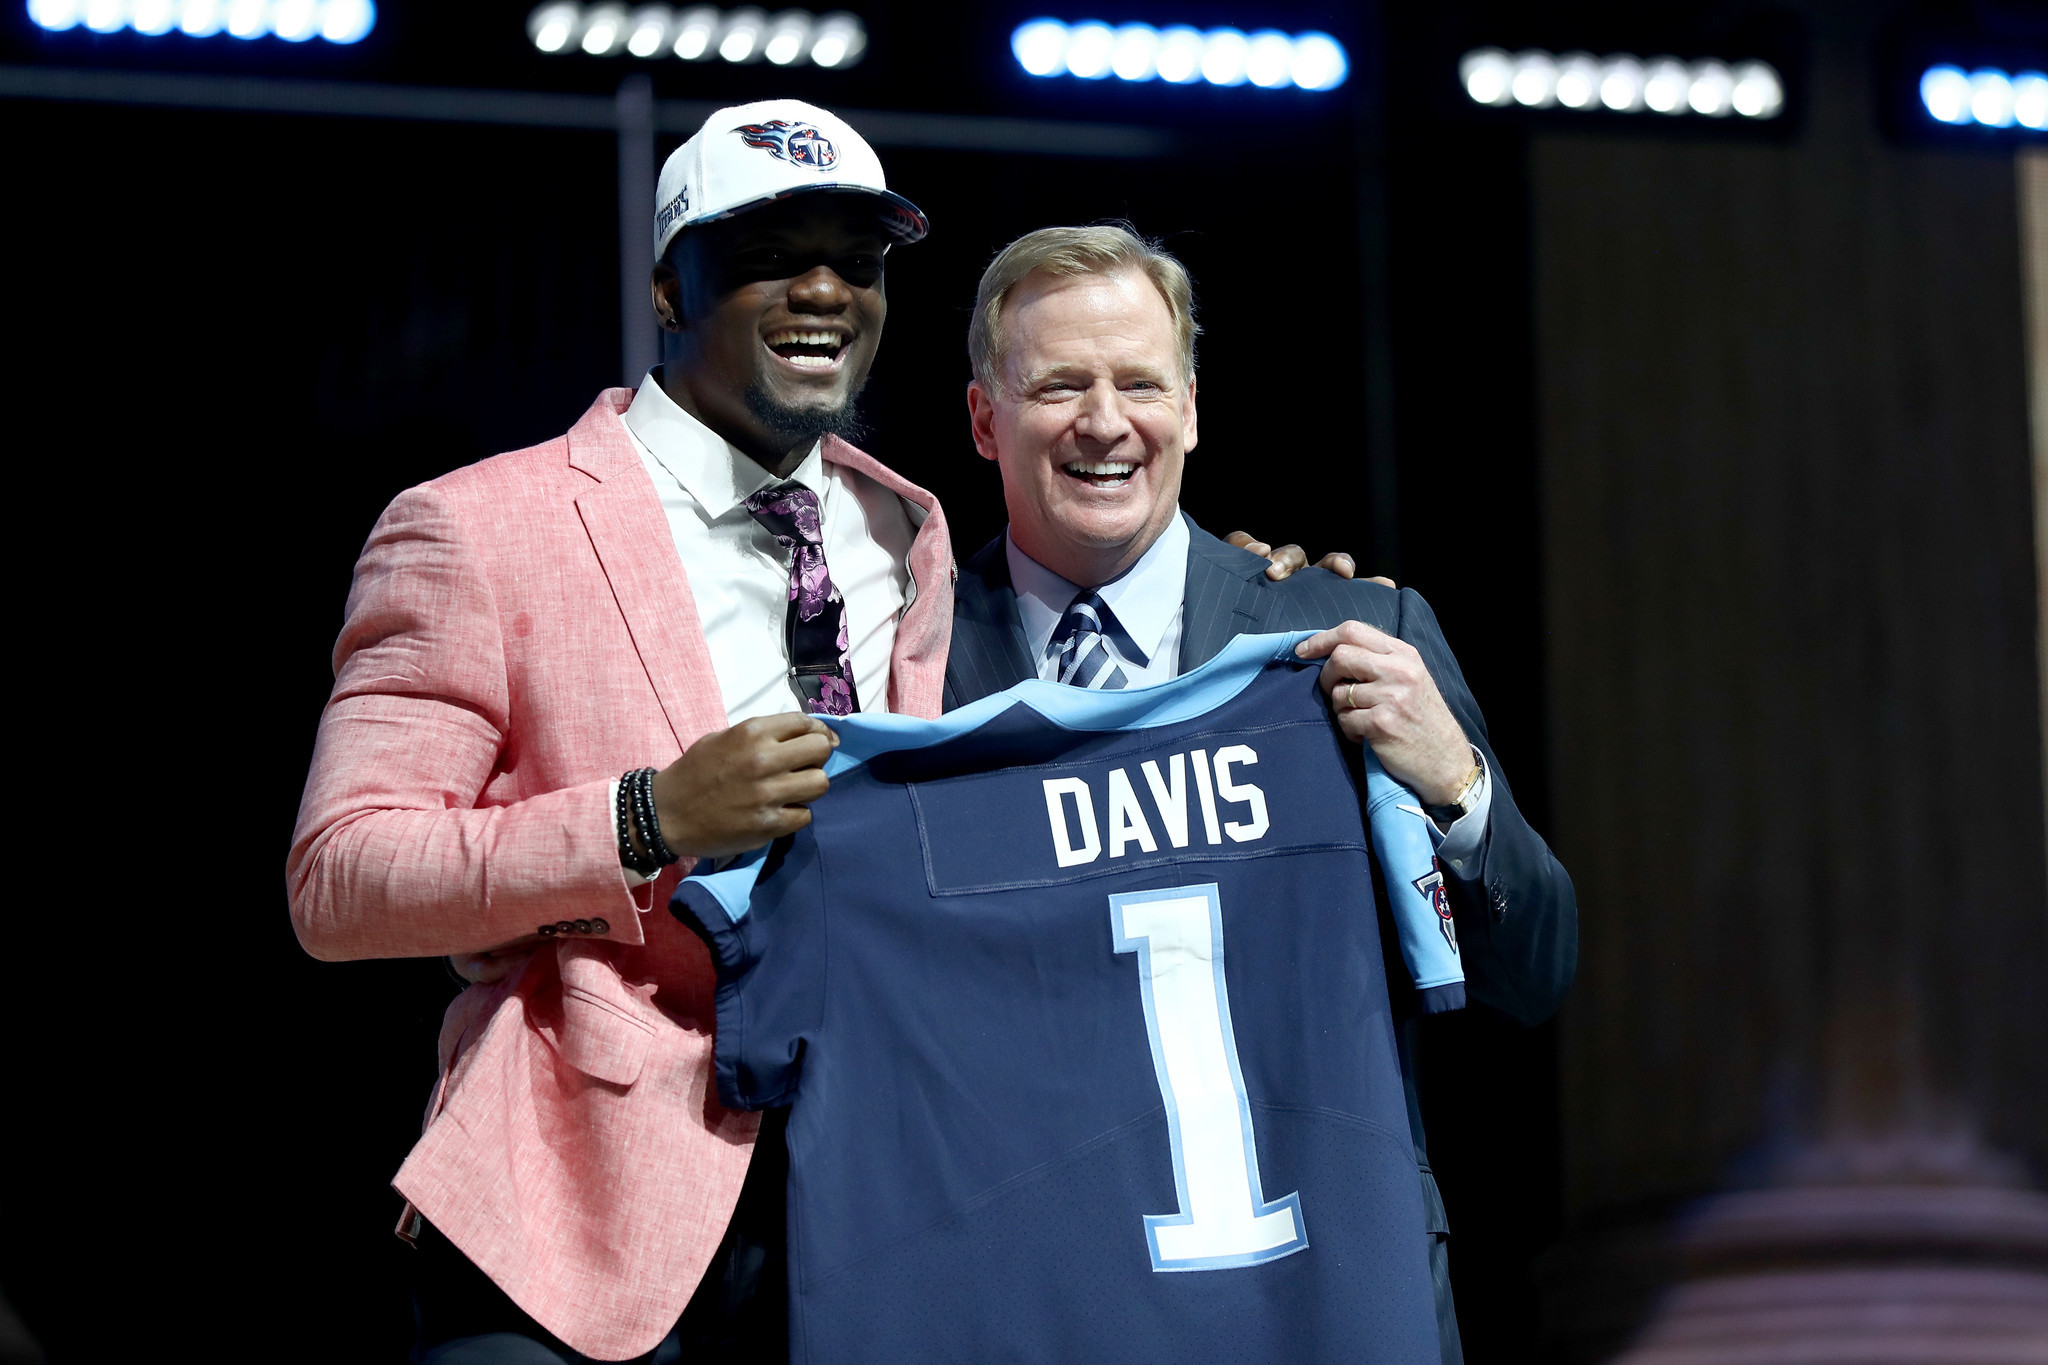 Wheaton Warrenville South graduate Corey Davis picked 5th in NFL draft by Titans